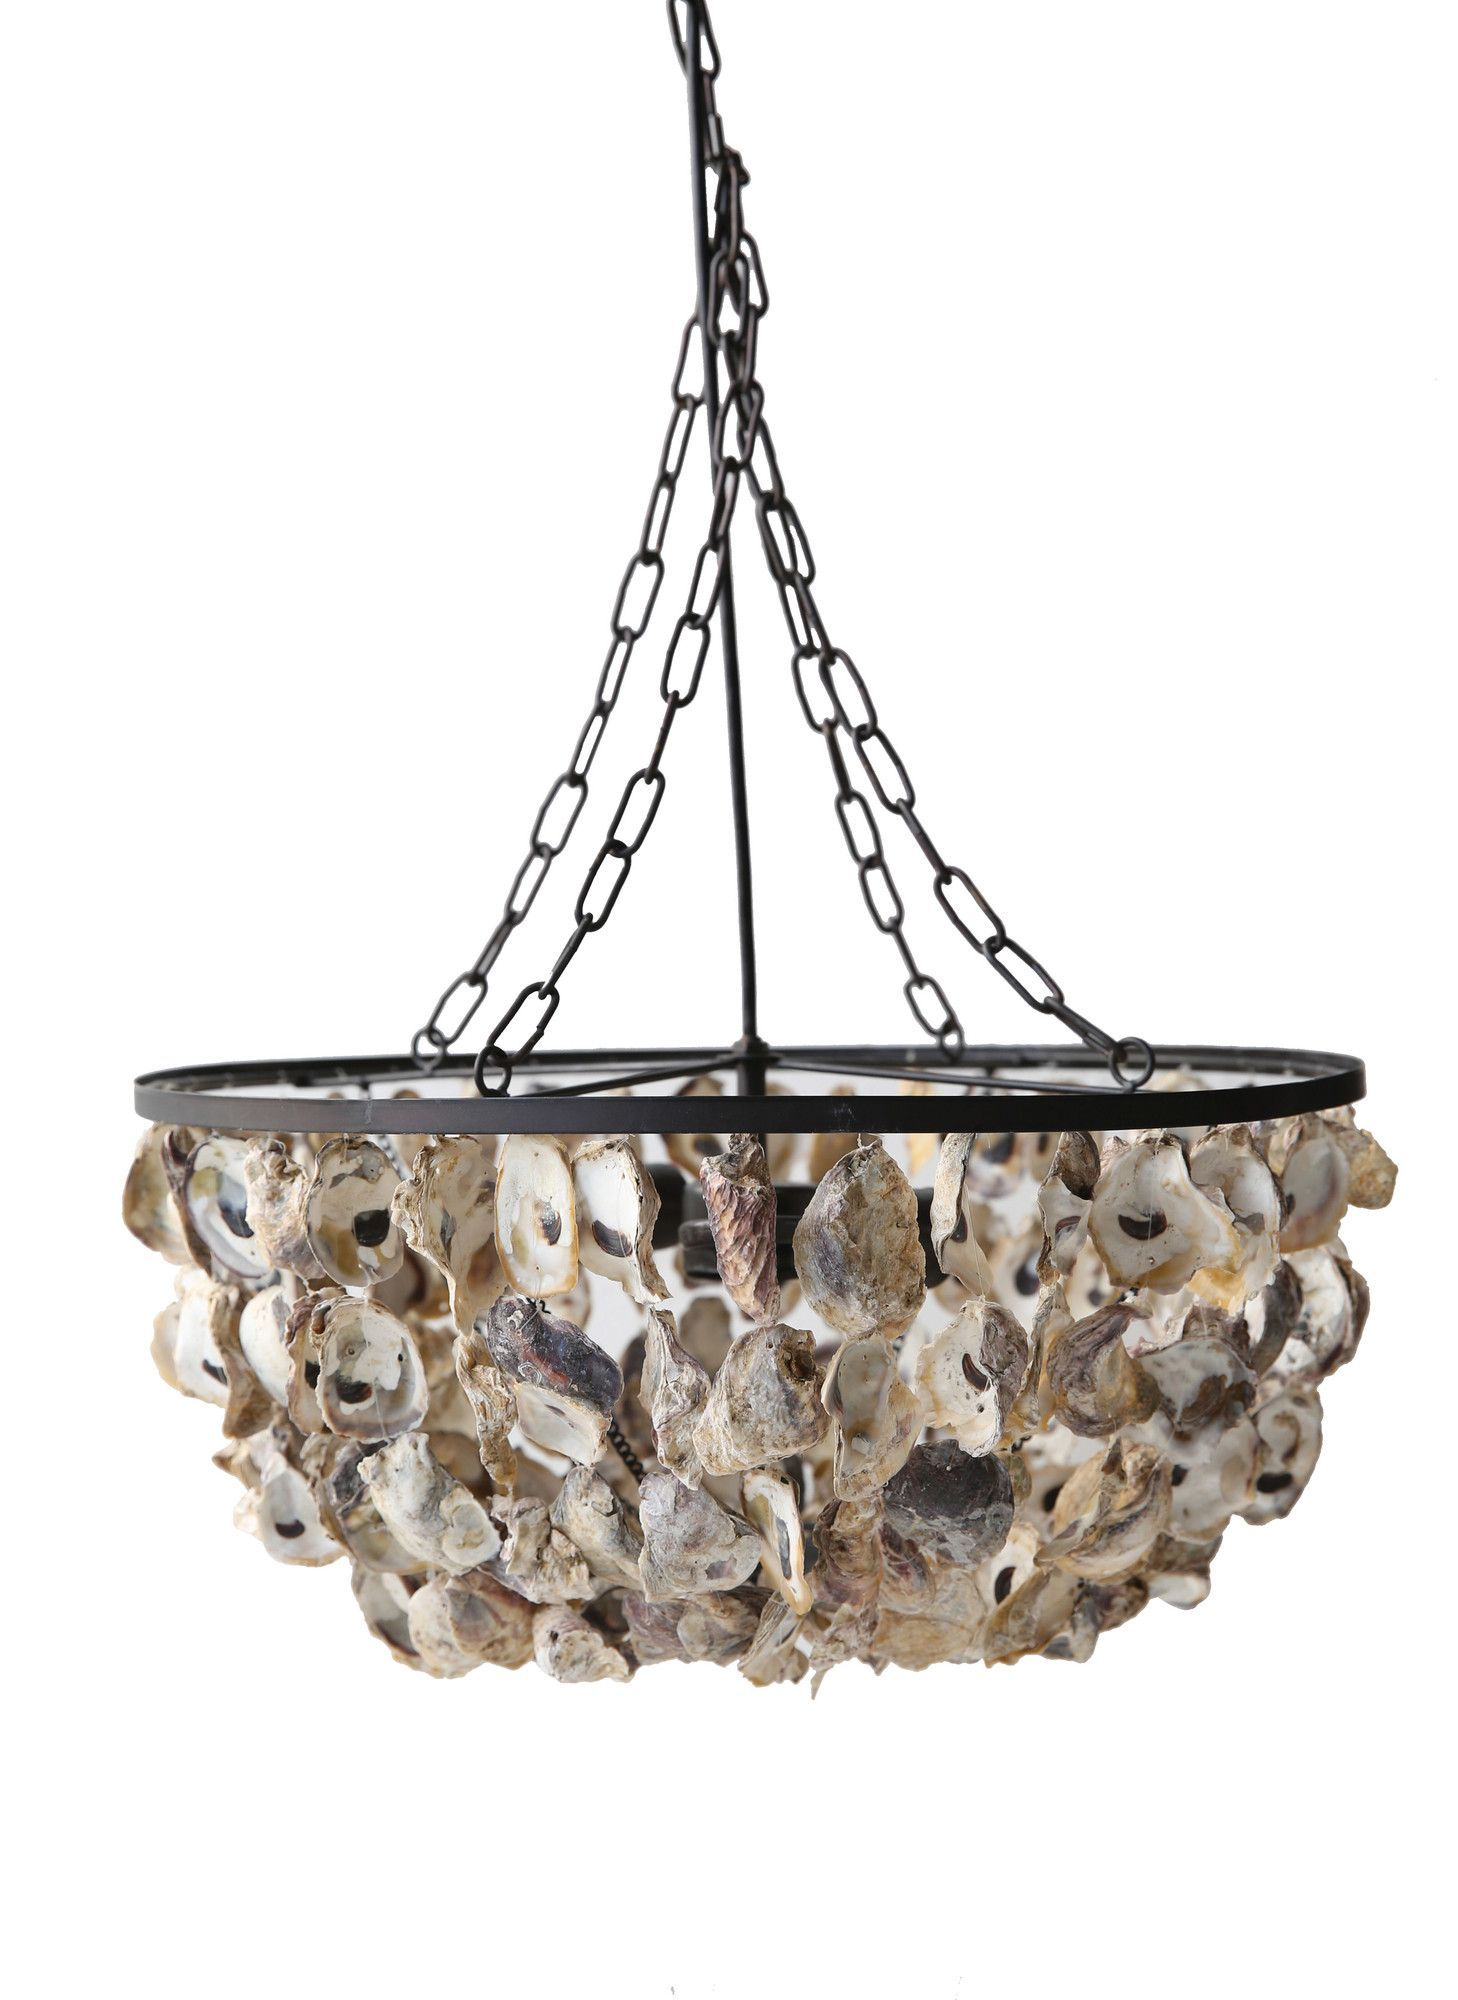 Features Waterside collection Material Oyster shell Maximum